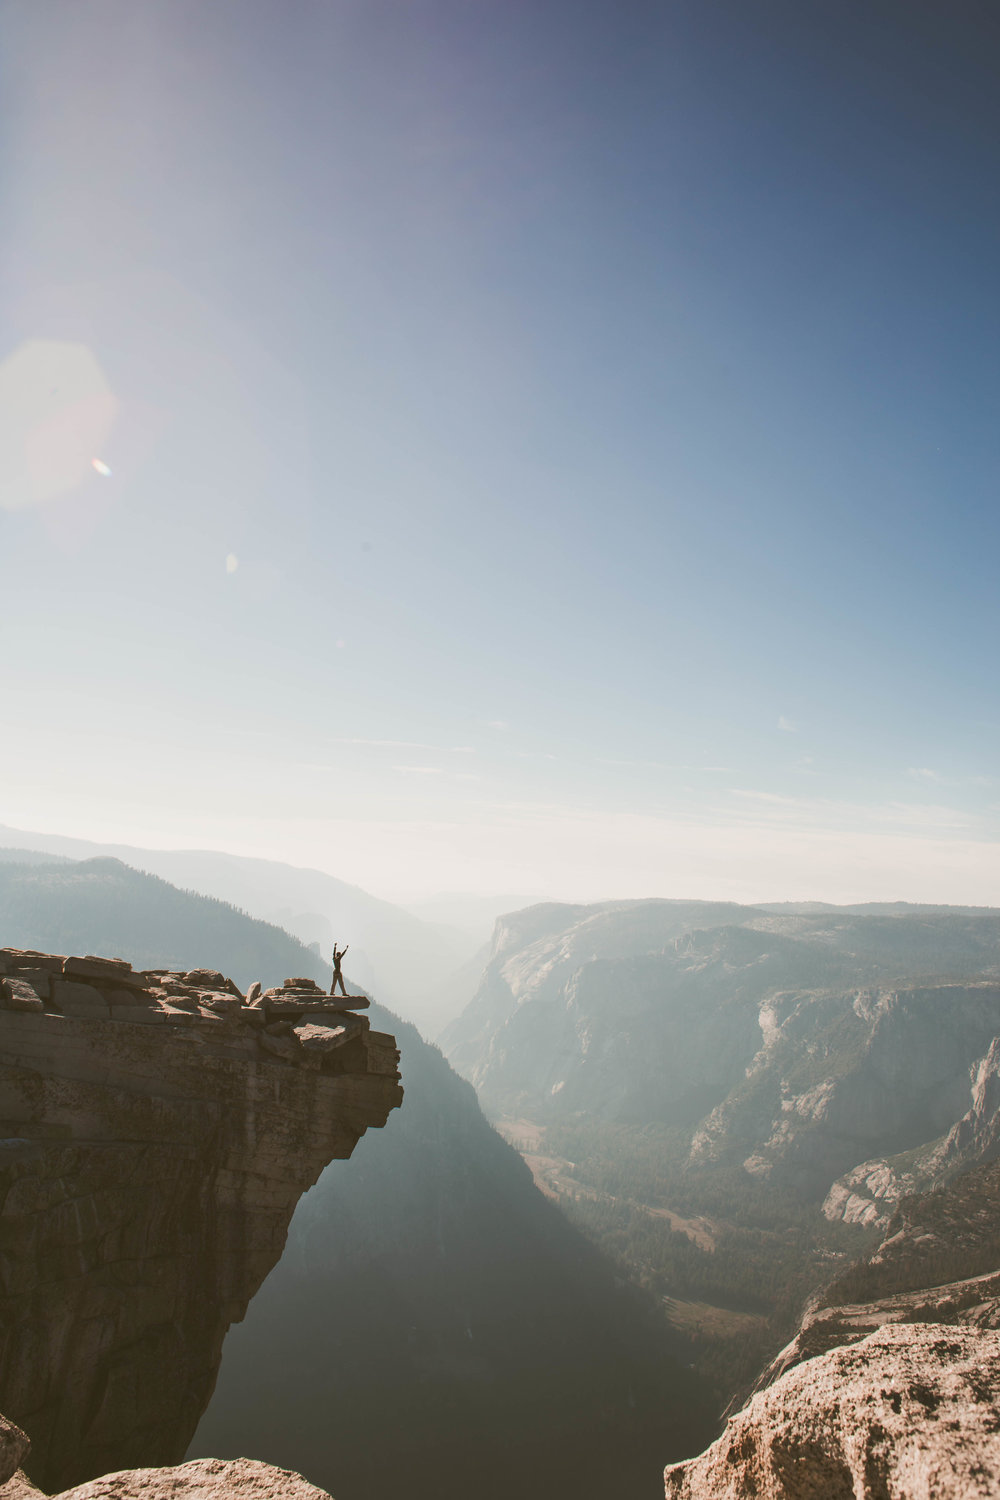 Rich on the Half Dome diving board